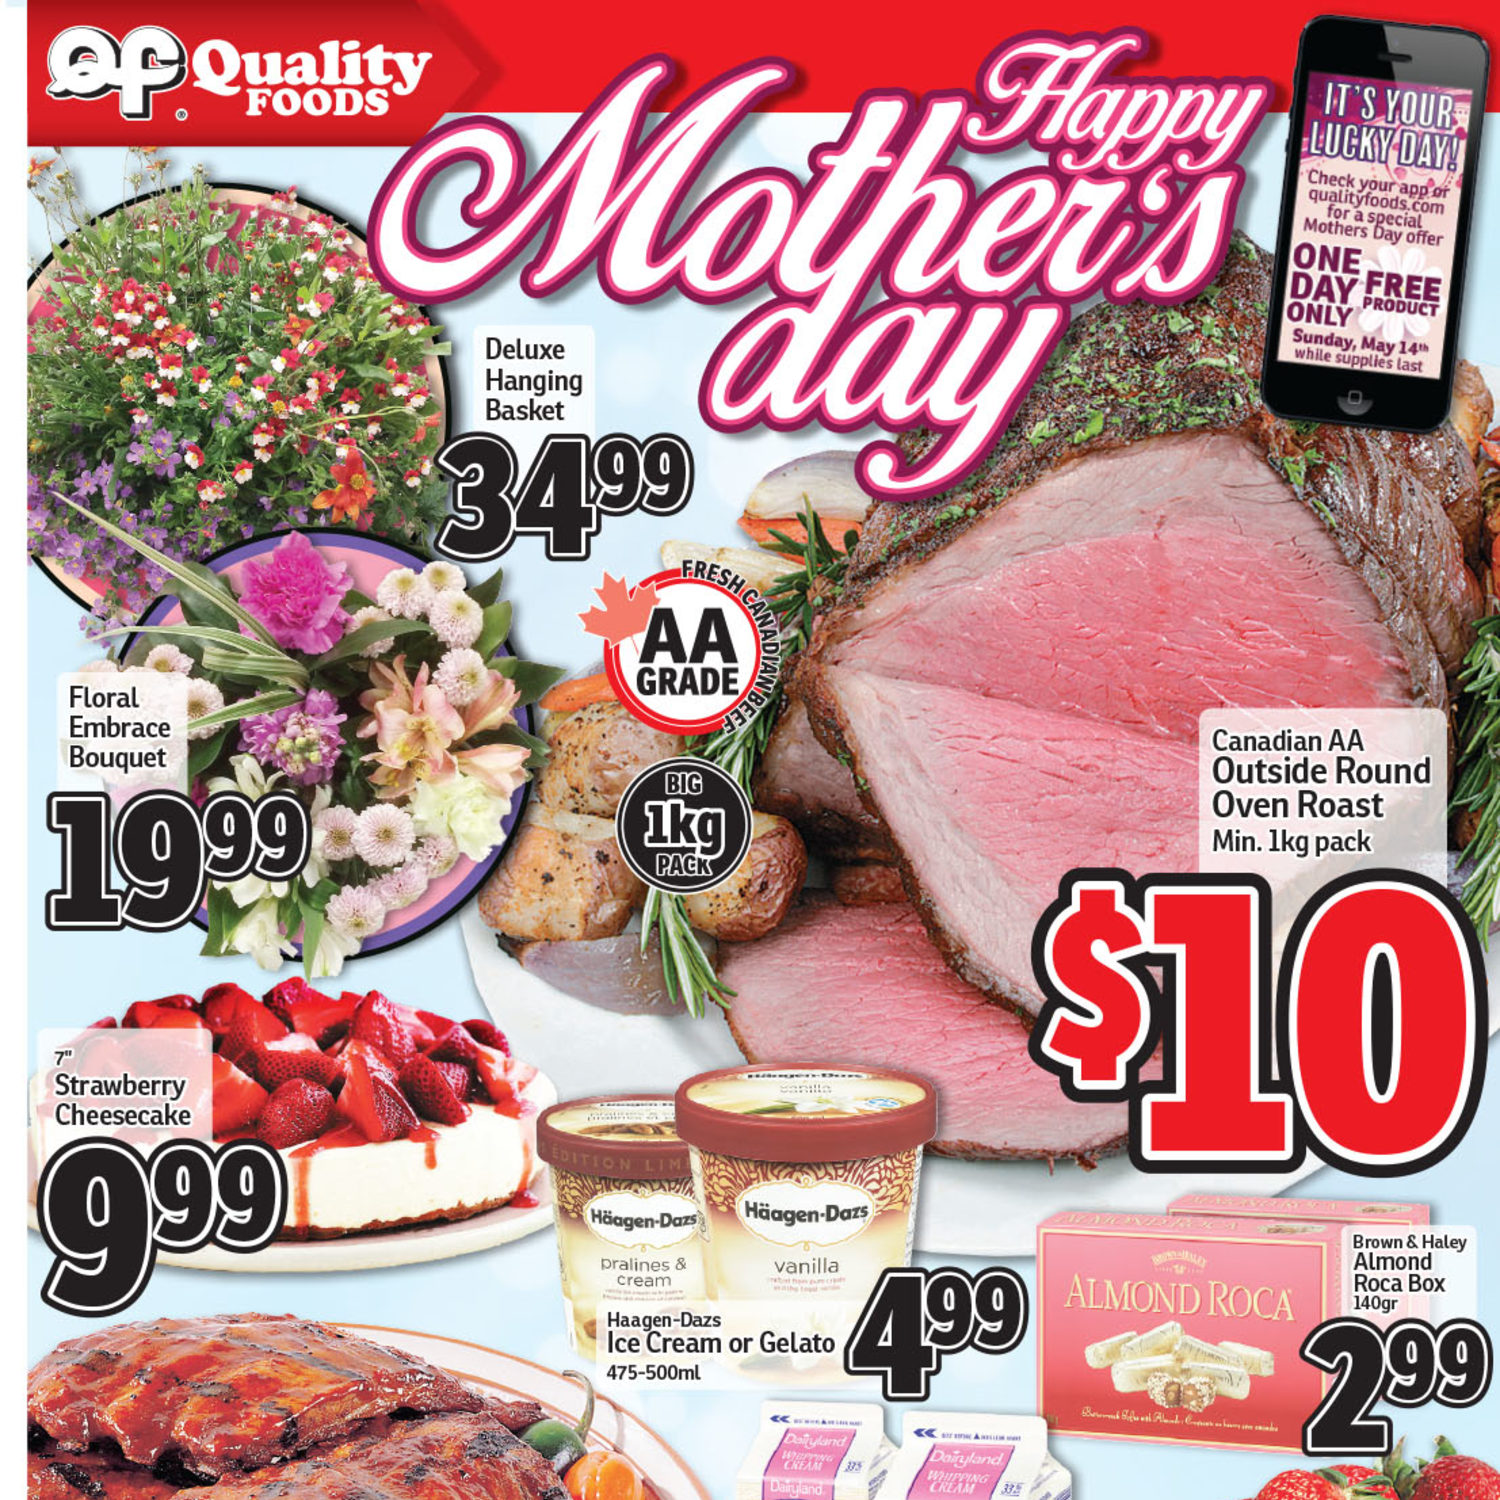 Quality Foods Weekly Flyer - Weekly Specials - Happy Mother's Day - May 8 – 14